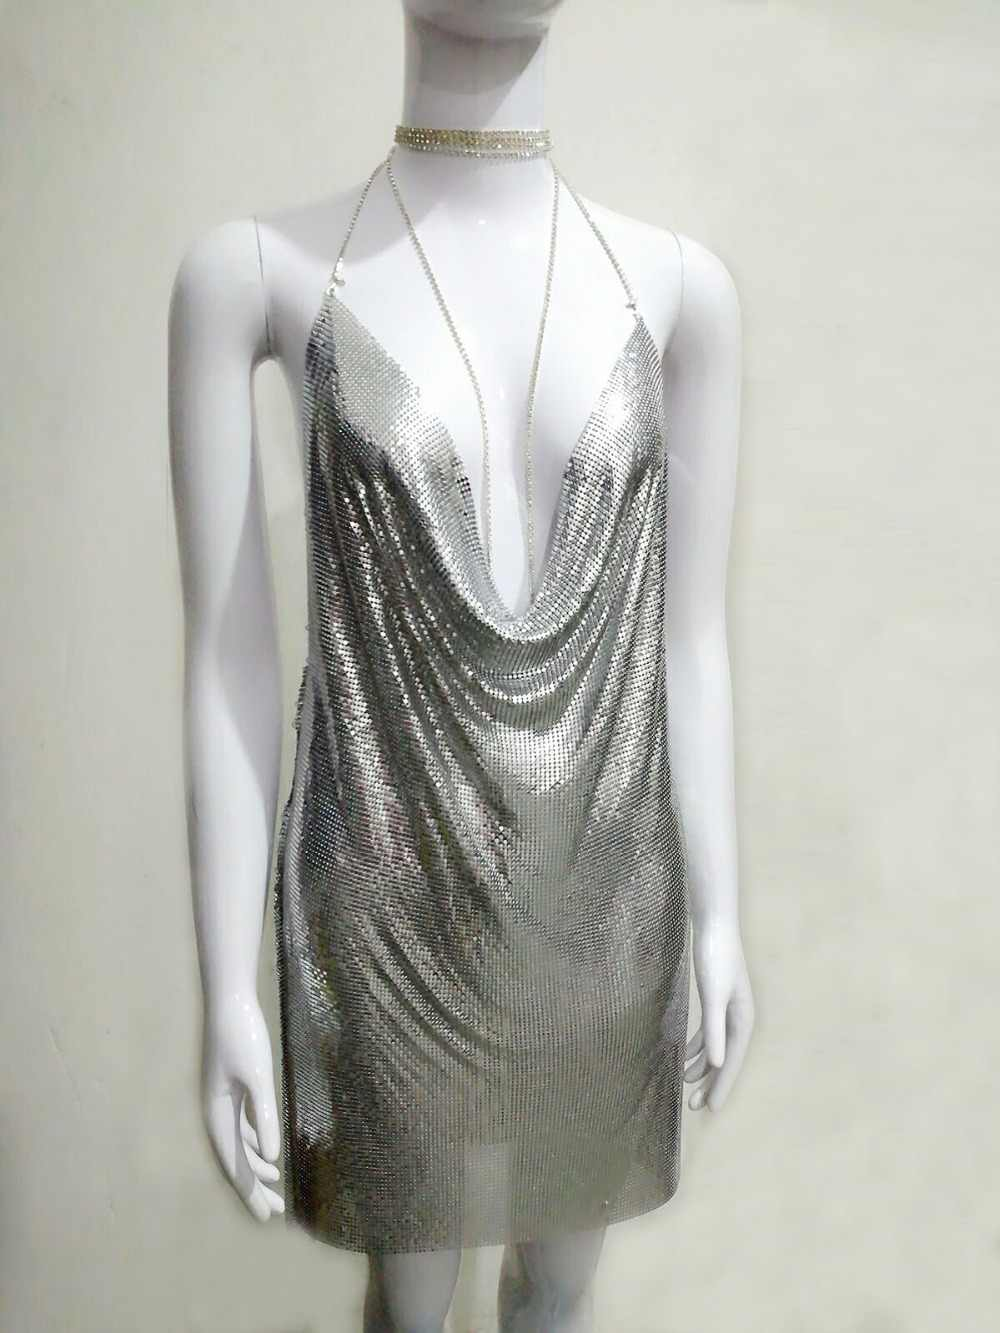 9e234ab8 ... Bonnie Forest Sexy Deep V Neck Gold Sequined Metallic Halter Backless  Party Dress Kendall Jenner's Nightclub